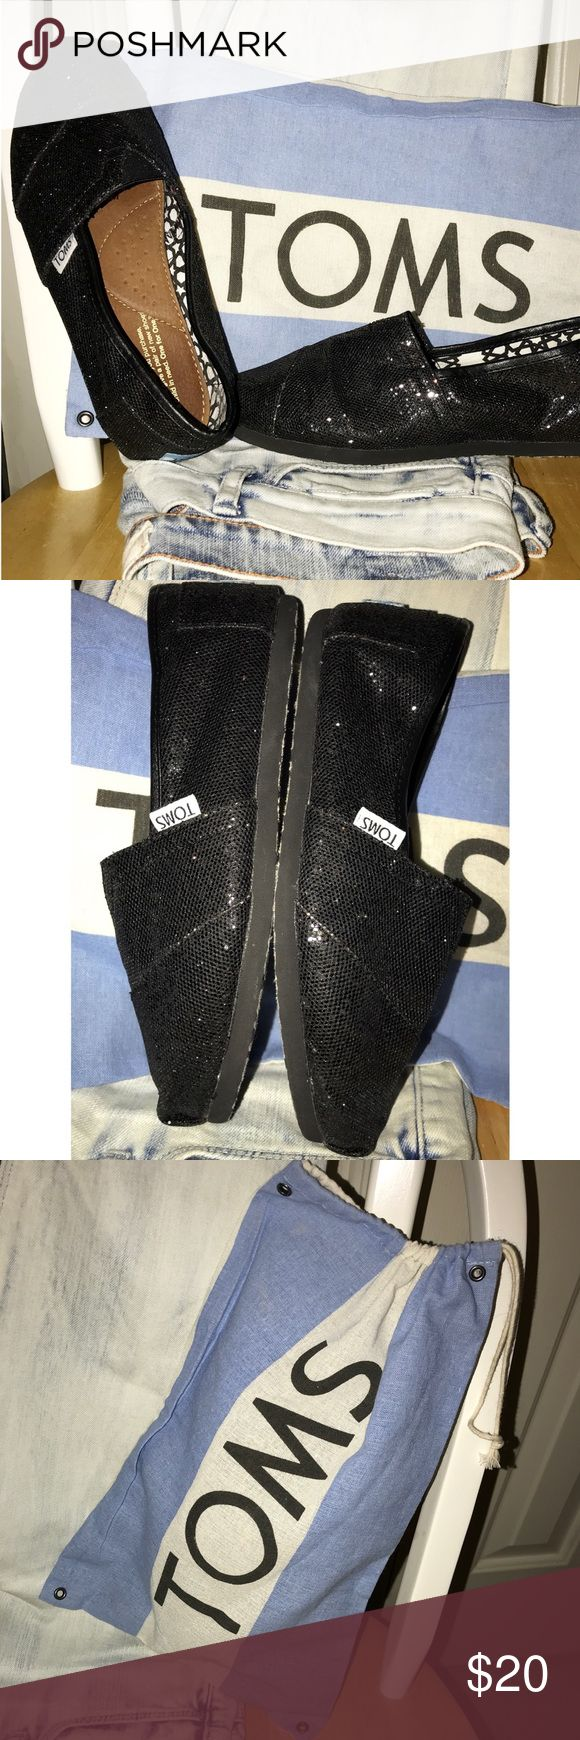 Black Glitter TOMS w/ Bag! Never worn, NWOT. No damages, true to size! Black glitter, size 7 women's. Comes with TOMS bag! Toms Shoes Flats & Loafers